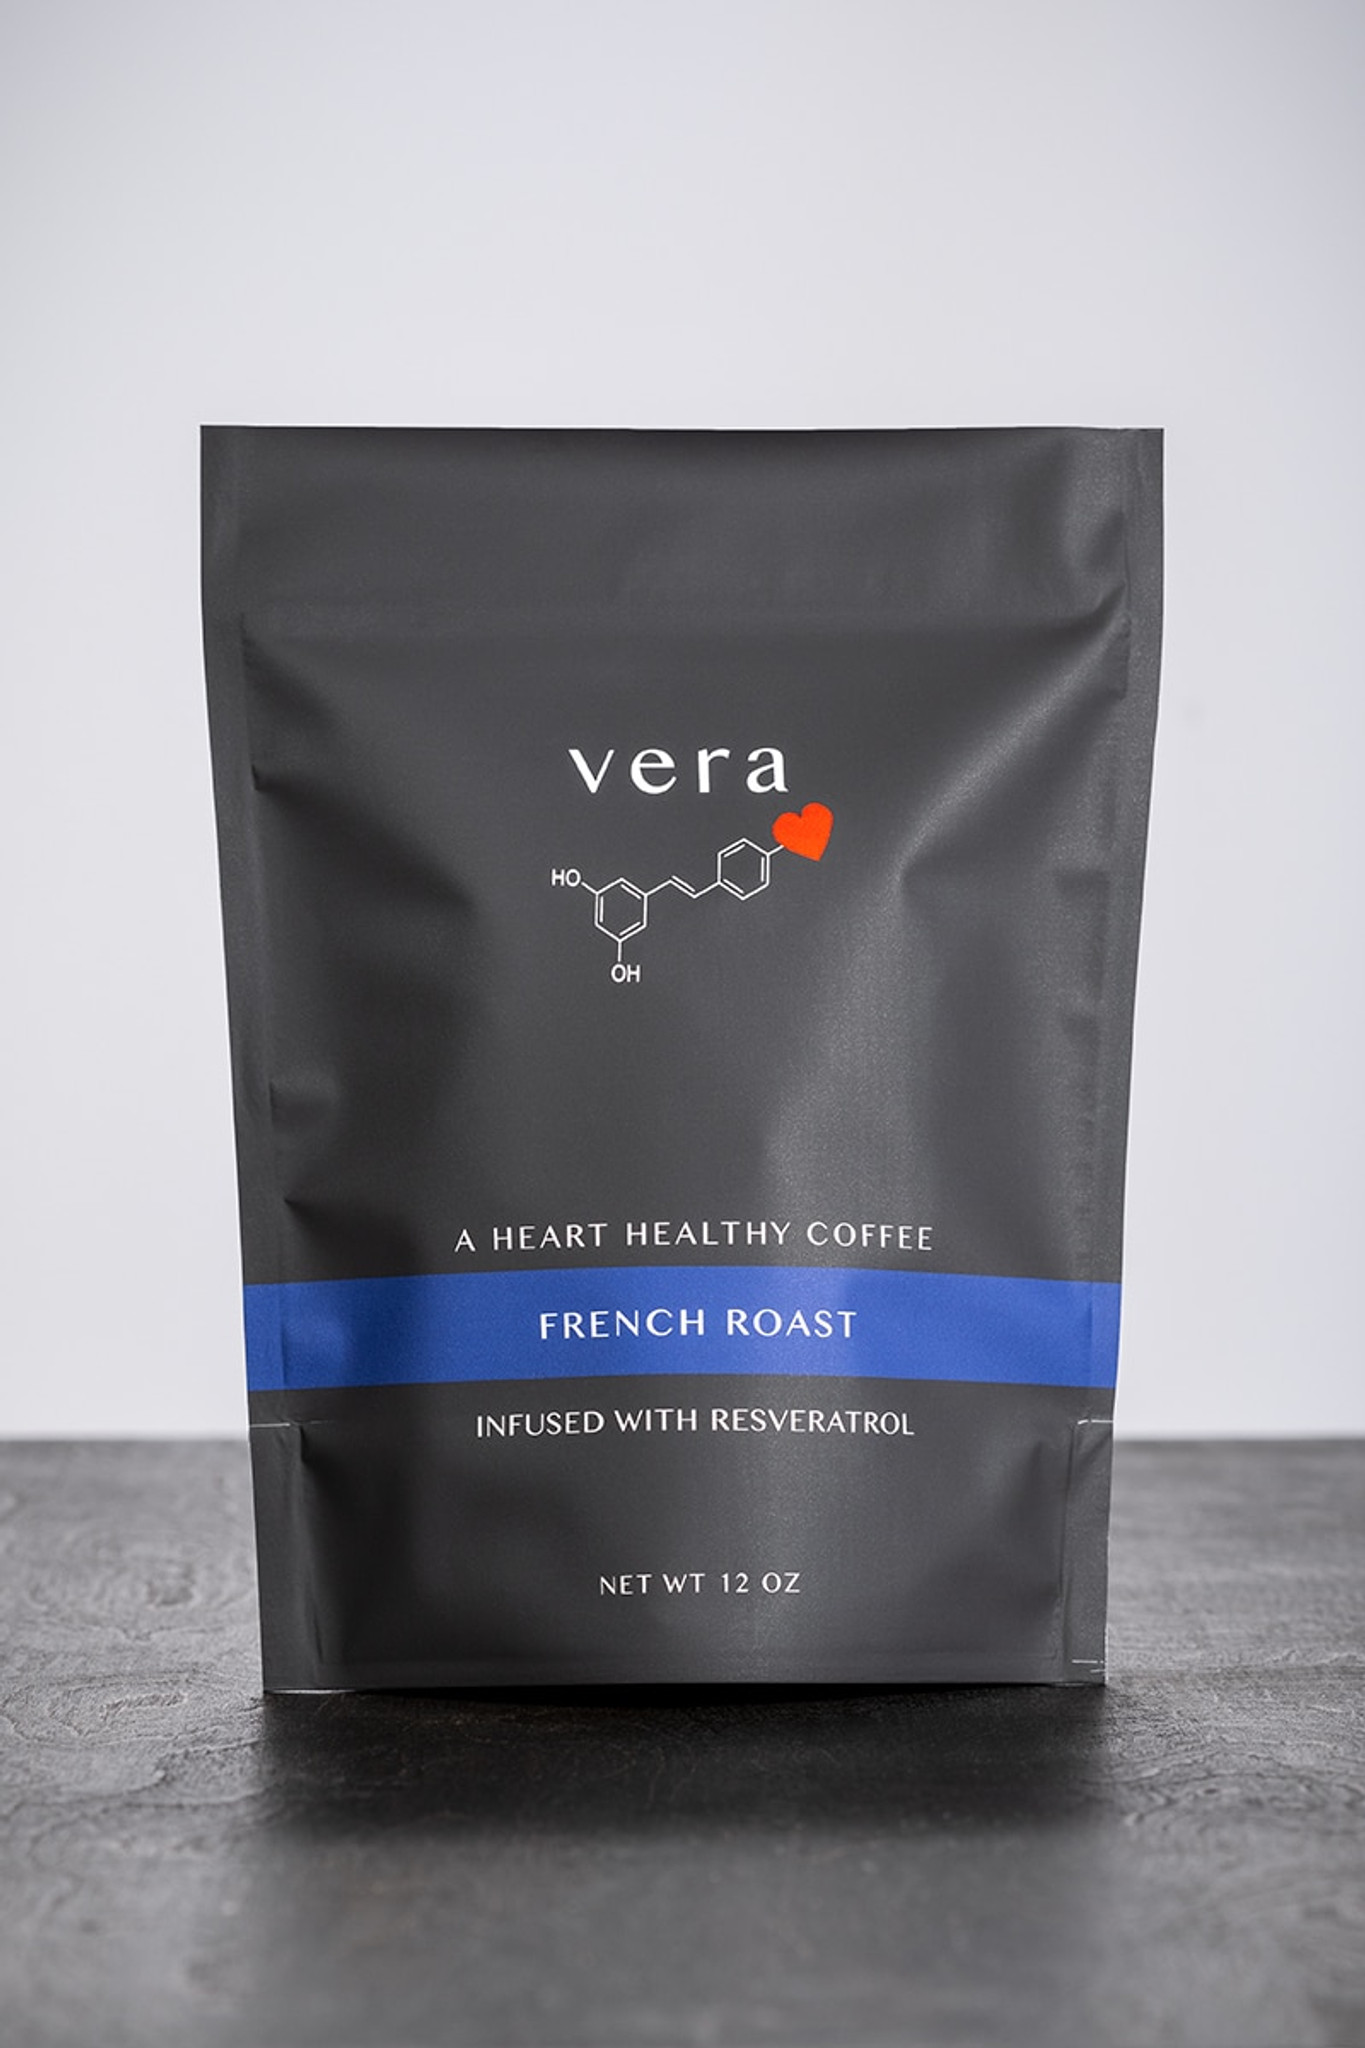 Resveratrol-infused French Roast Coffee is smooth, delicious and good for you